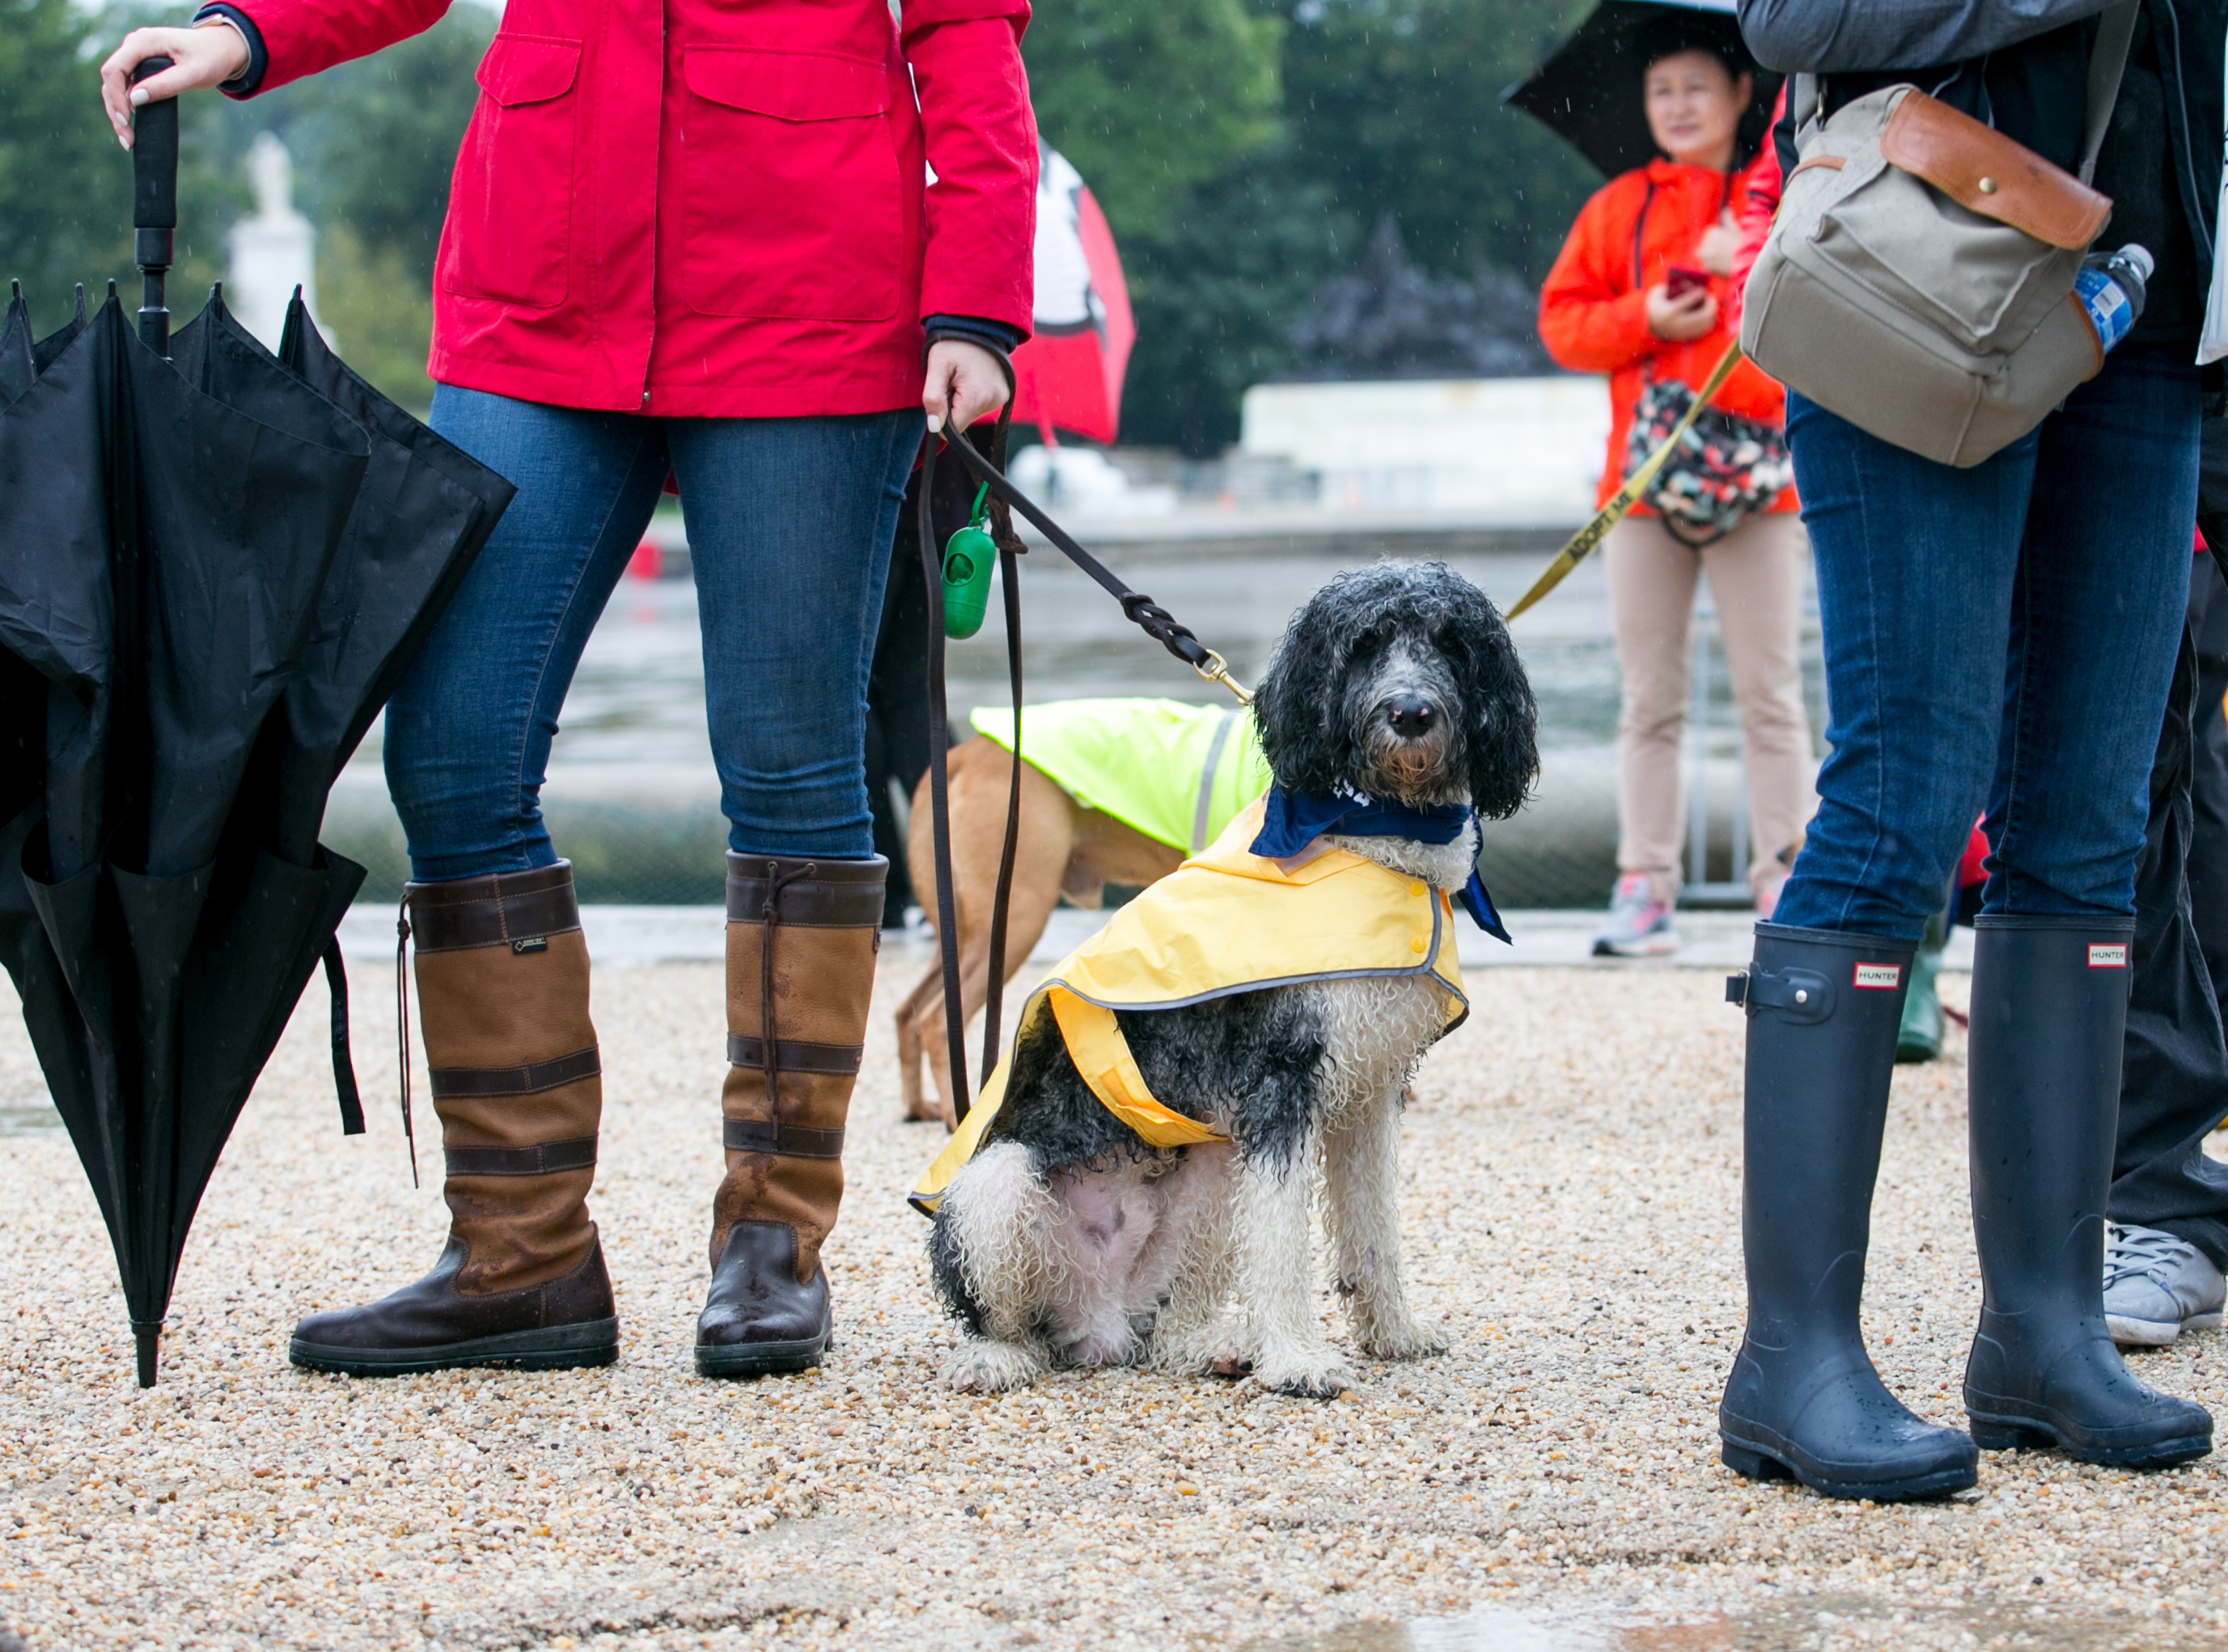 "Despite the never-ending rain, the second annual Bipawtisan March brought dogs from both sides of the aisle together to march from Capitol Hill to 'yappy hour' at Wunder Garten for beer and pup-friendly treats. The event, organized by a female-run non-profit WeTheDogsDC, had approximately 100 participants and raised $10,000 for more than 30 rescue organizations around town. According to the organizers, ""the mission of the Bipawtisan March is to show that no matter what side of the aisle you stand on, the love we have for our pets transcends all political agendas and is a cause that we can all support."" Attendees were encouraged to don costumes showing what they were marching for and to carry family-friendly signs. 100 percent of the event proceeds were donated to rescue organizations. (Image: Carina Thornton/ DC Refined)"